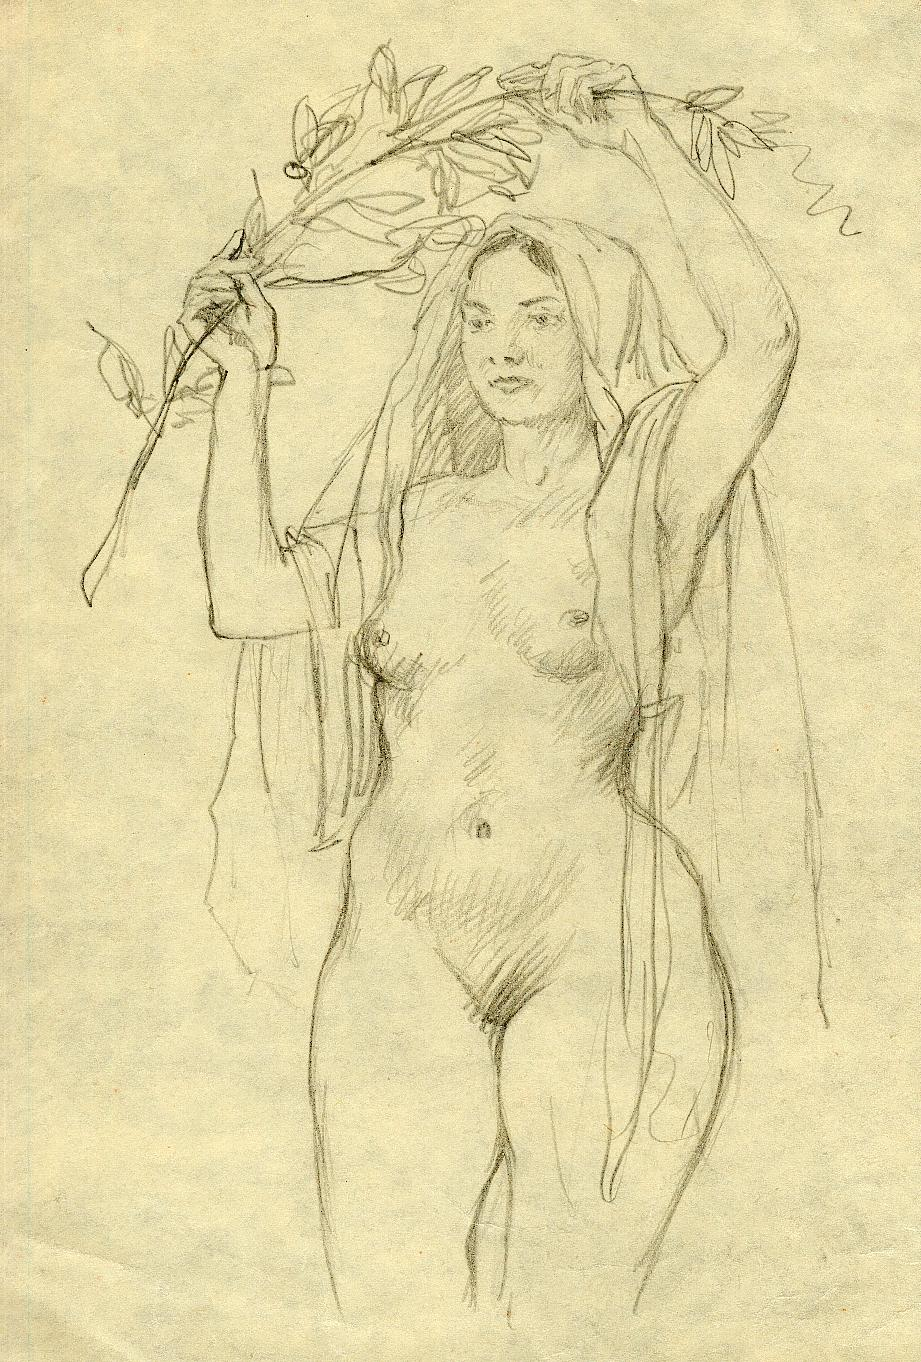 Xxx girls pencil sketch drawing erotic toons